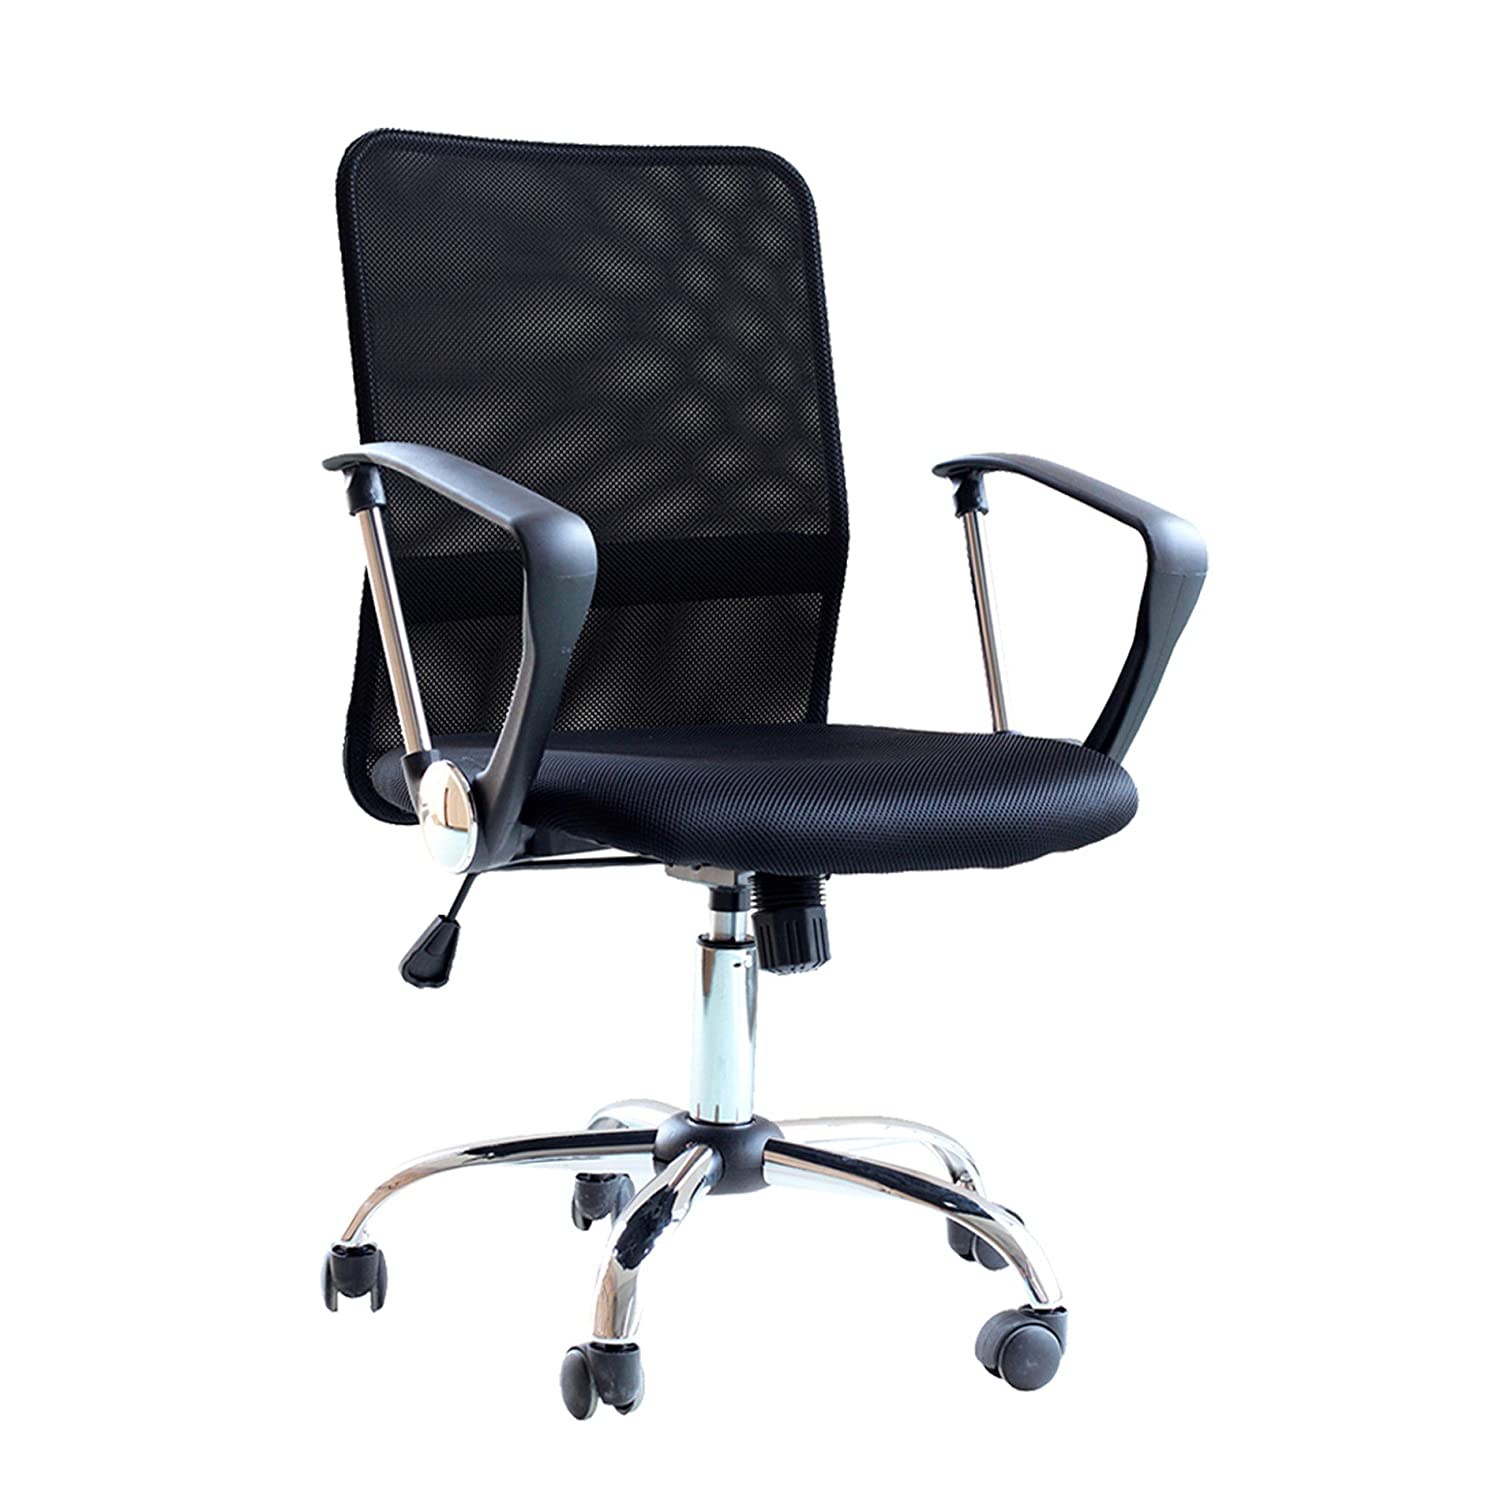 IDS Online IDS-18509 Ergonomic & Comfortable Home & Office Desk Swivel, Breathable & Durable Mesh Mid Back, Adjustable & Stylish Computer Chair